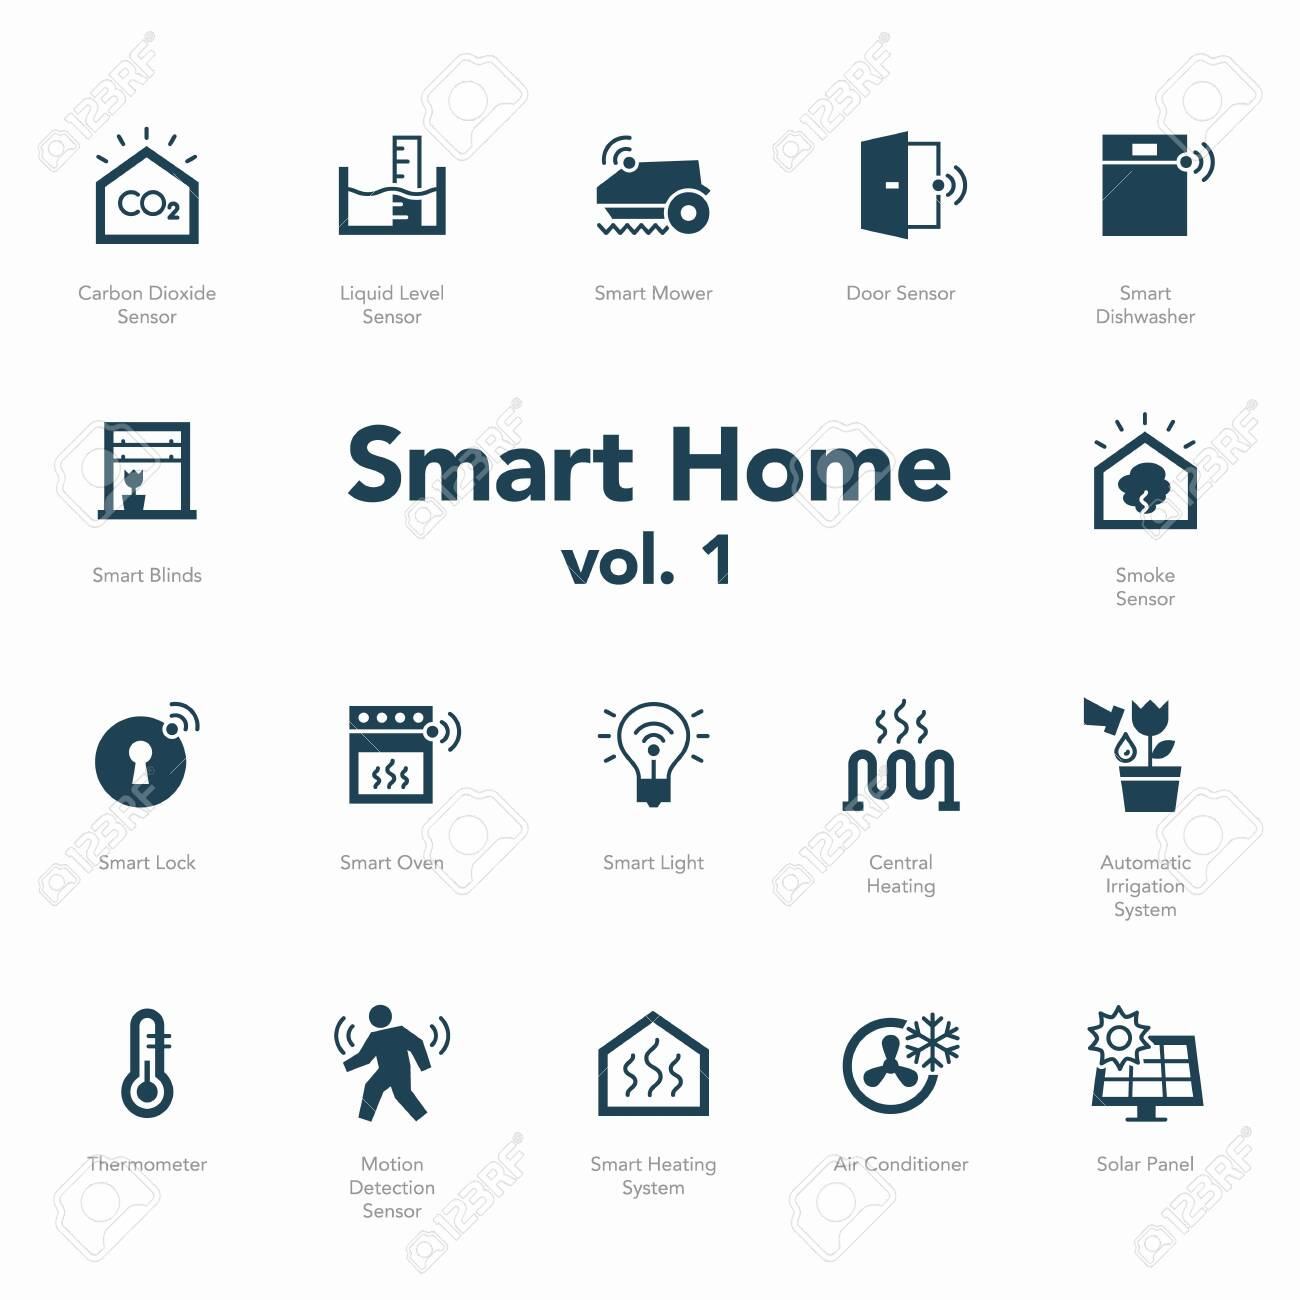 Smart home icon set volume 1 isolated on light background. Contains such icons Smart Heating System, Thermometer, Liquid Level Sensor, Motion Detection Sensor and more. - 132261114